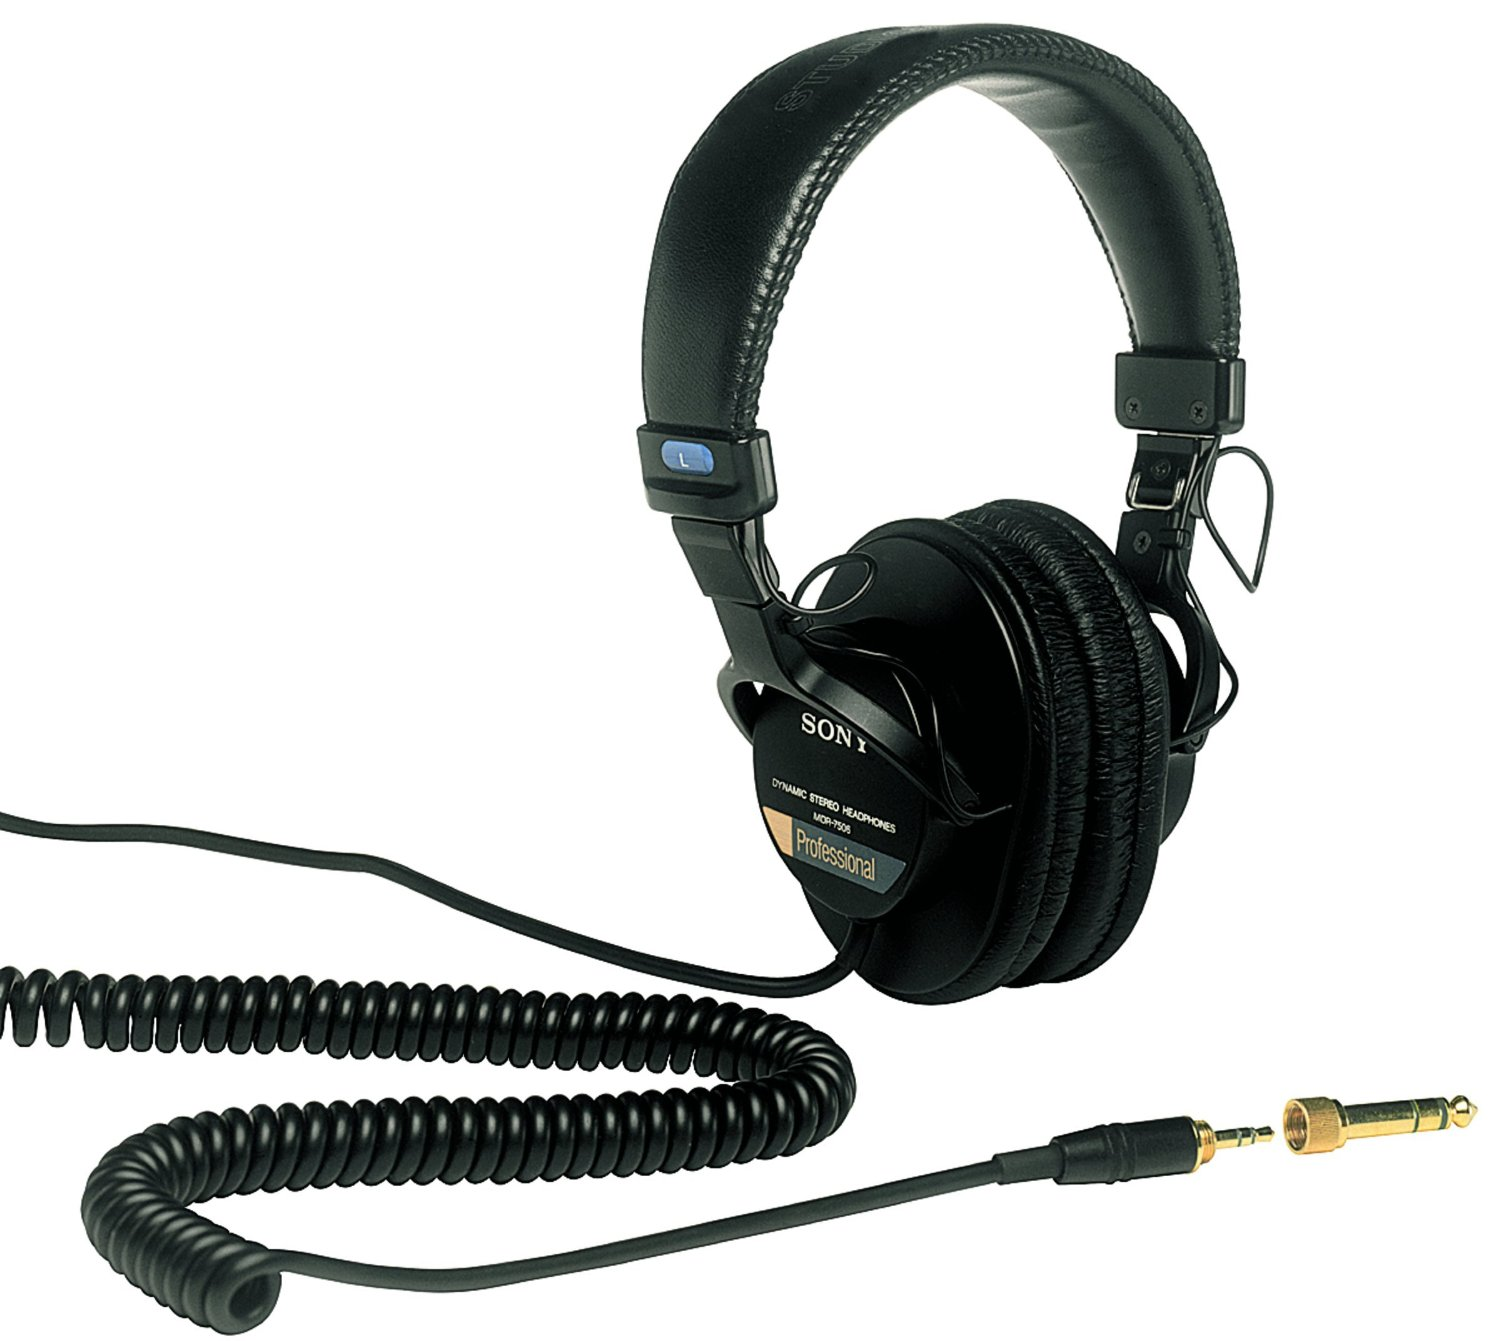 Sony Professional Headphones